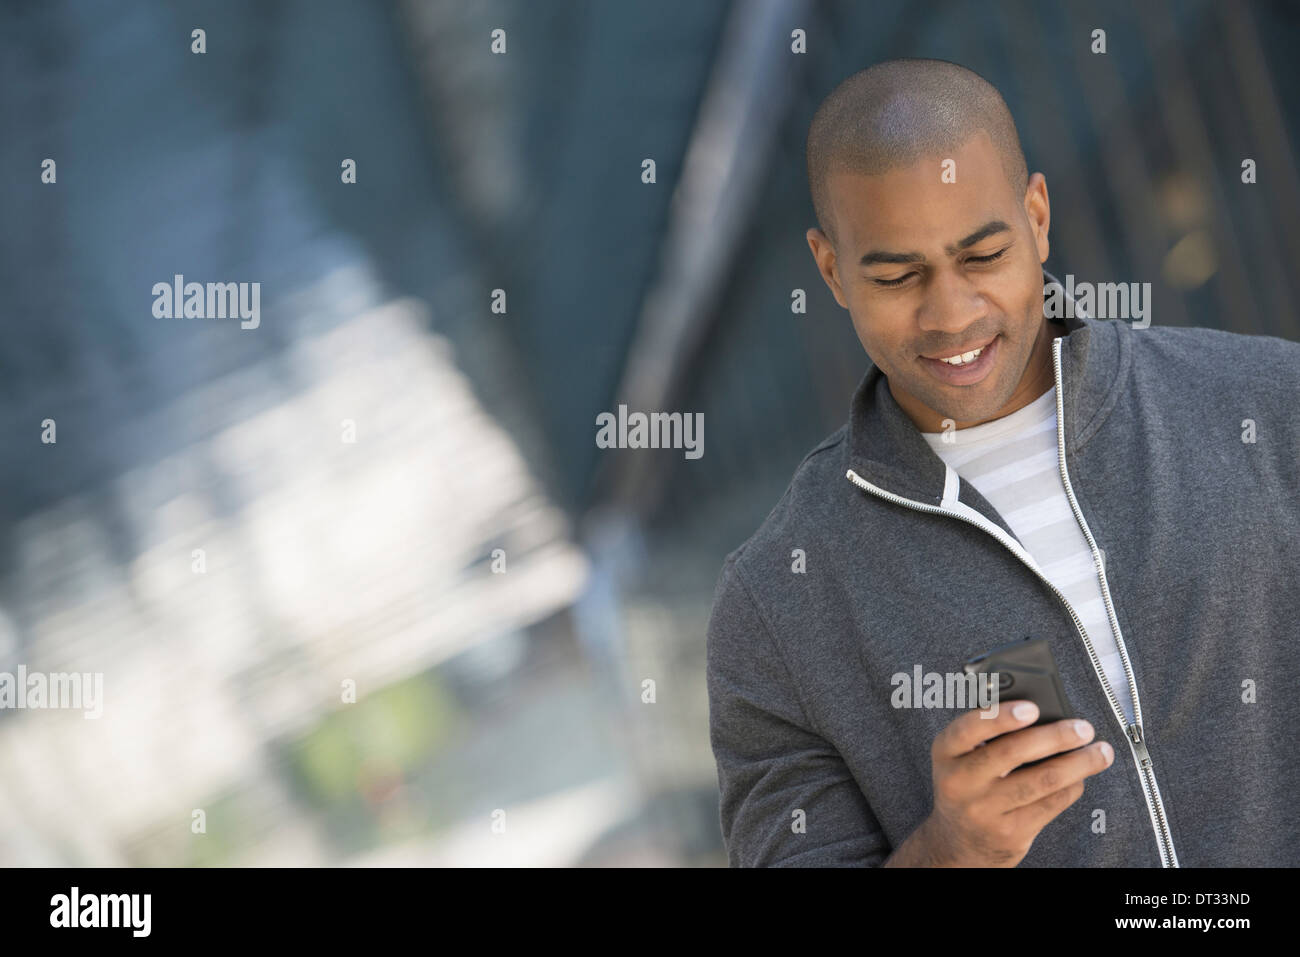 A man in a grey zipped sweatshirt using his smart phone - Stock Image